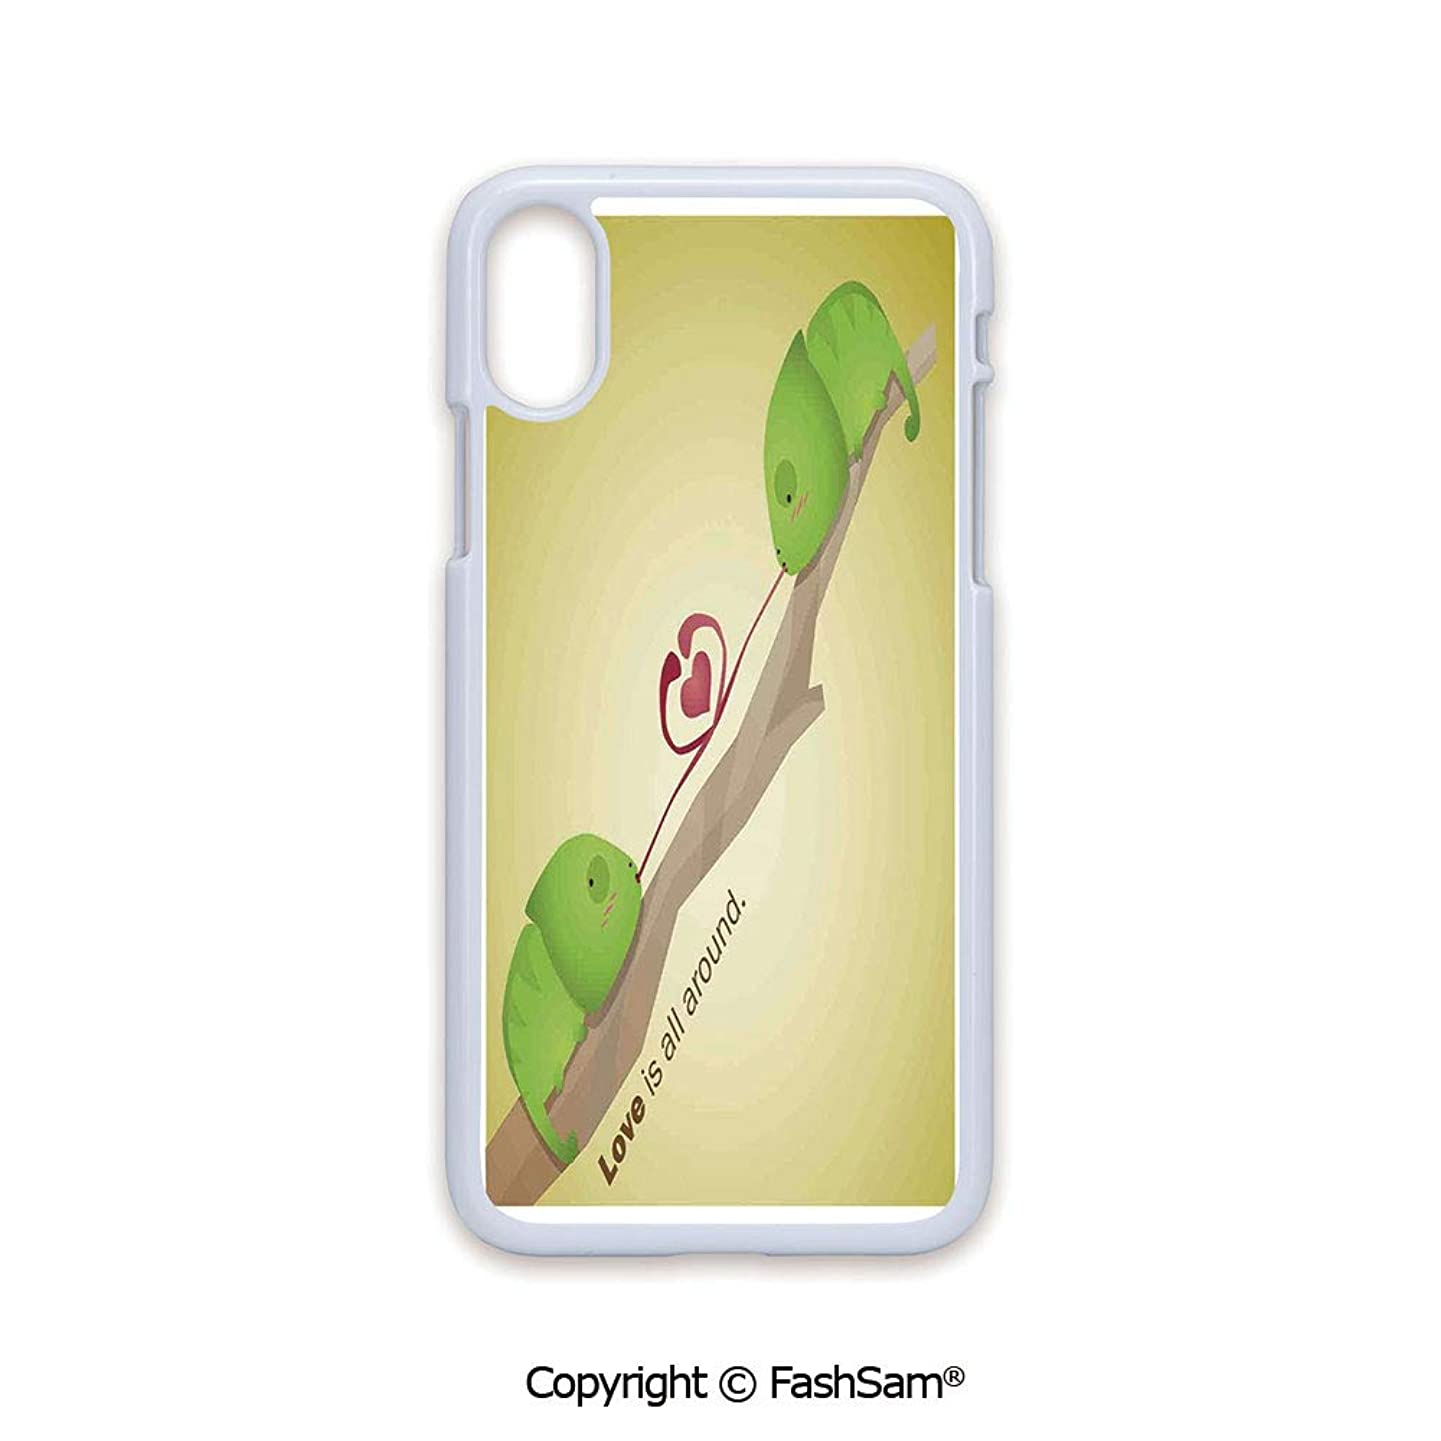 Plastic Rigid Mobile Phone case Compatible with iPhone X Black Edge Little Tree Reptiles on The Branch Make Love is All Around in Planet Earth Design 2D Print Hard Plastic Phone Case